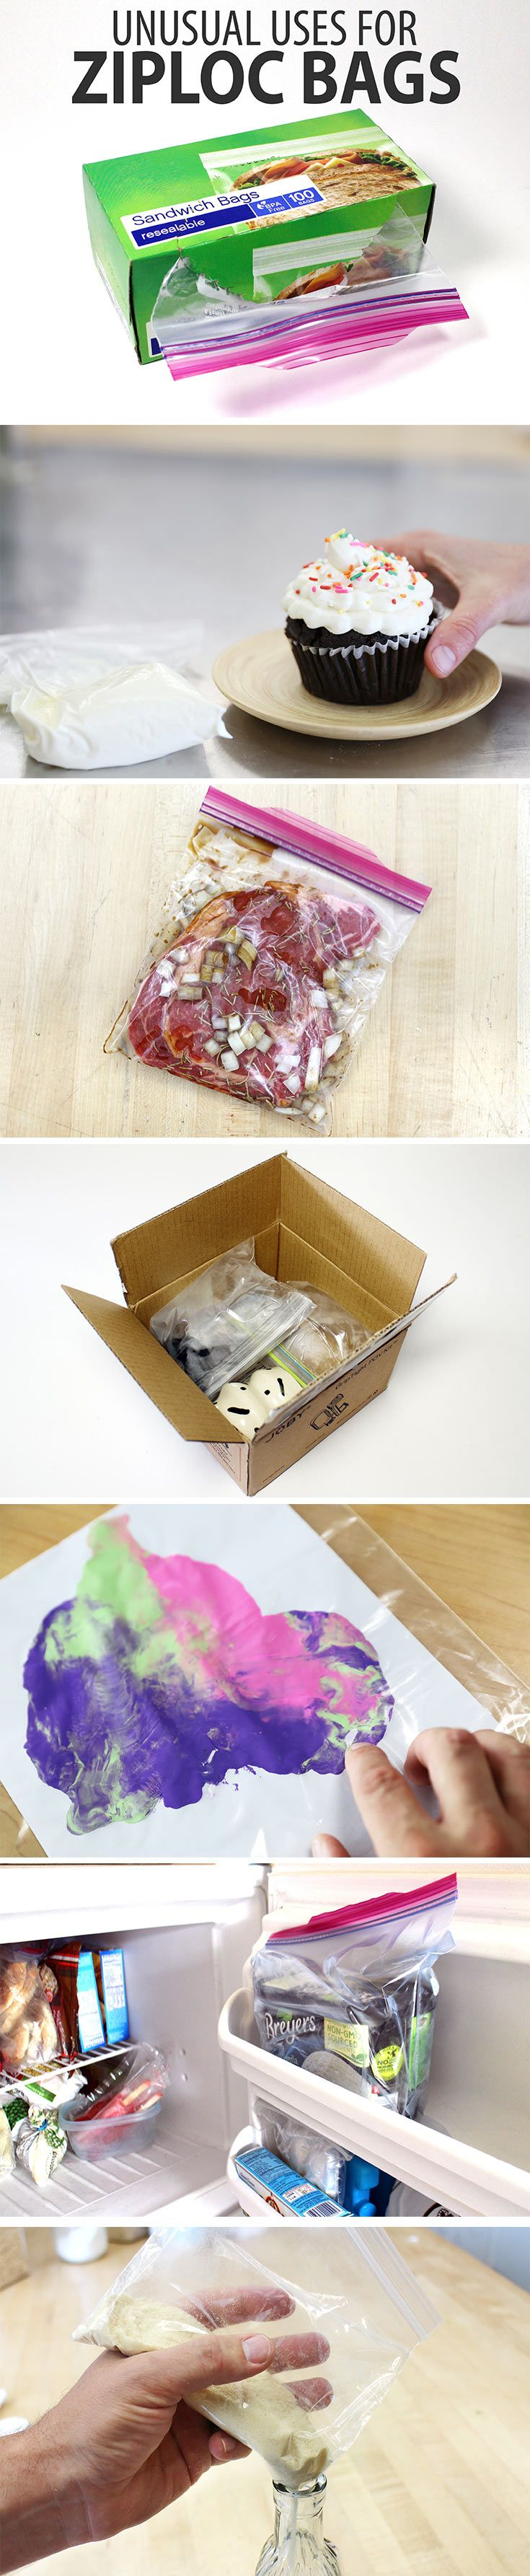 Resealable plastic bags are so useful at keeping things securely sorted. Though the organizational uses for this plastic pouched wonder are abundant, there's quite a few unusual uses for Ziploc bags that might surprise you.